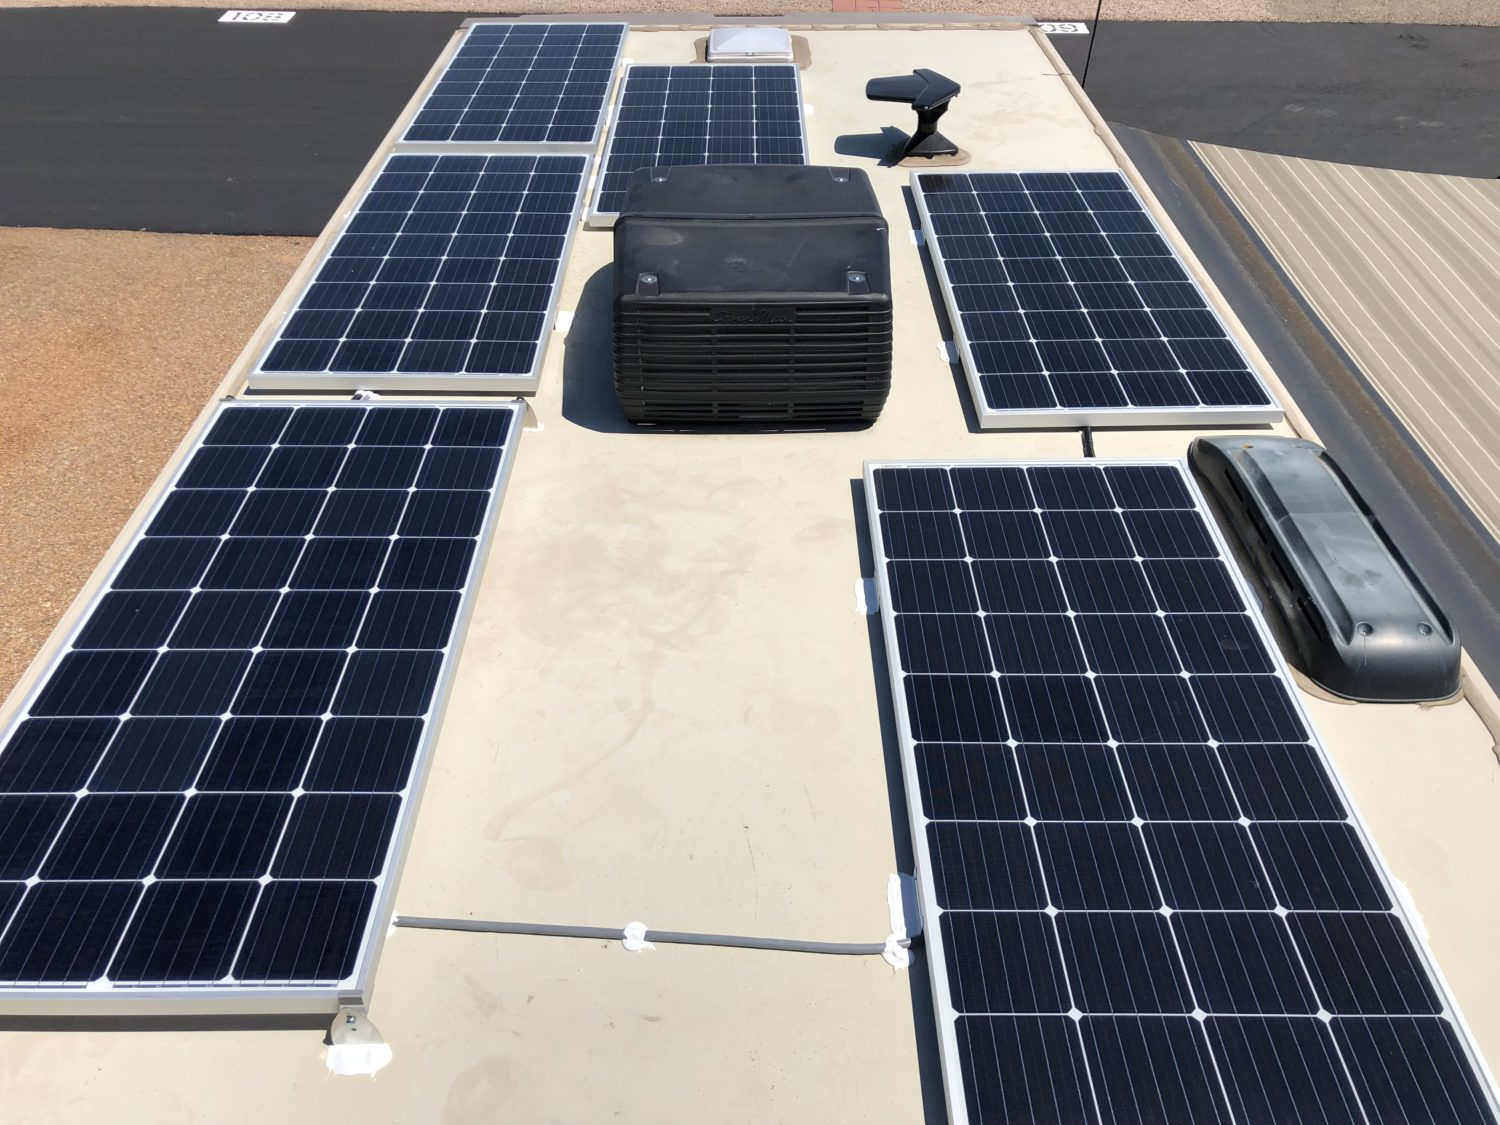 6x175W Solar Panels Installed on Roof of Winnebago Minnie Winnie